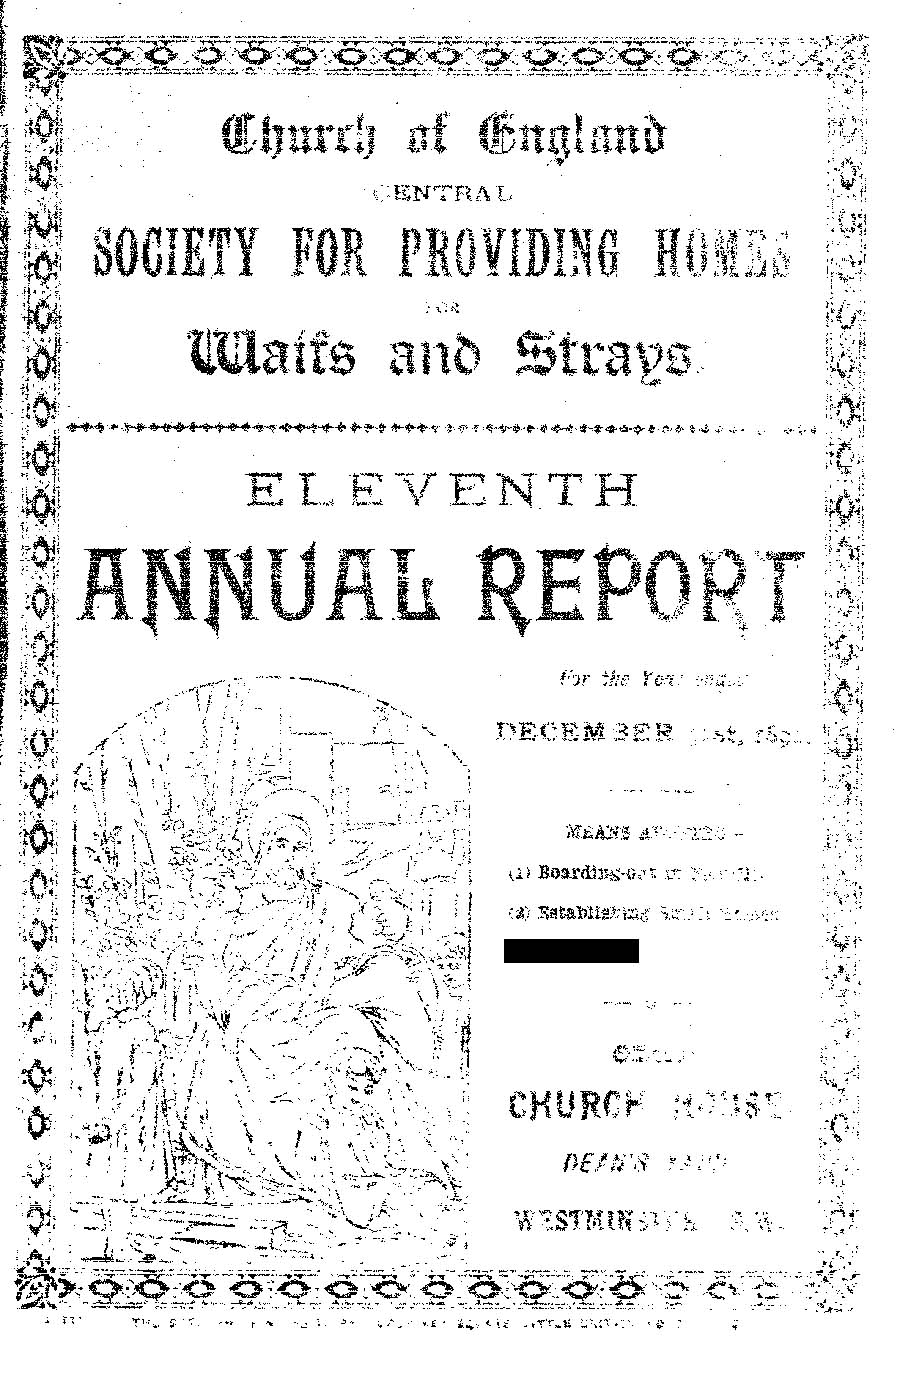 Annual Report 1891 - page 1